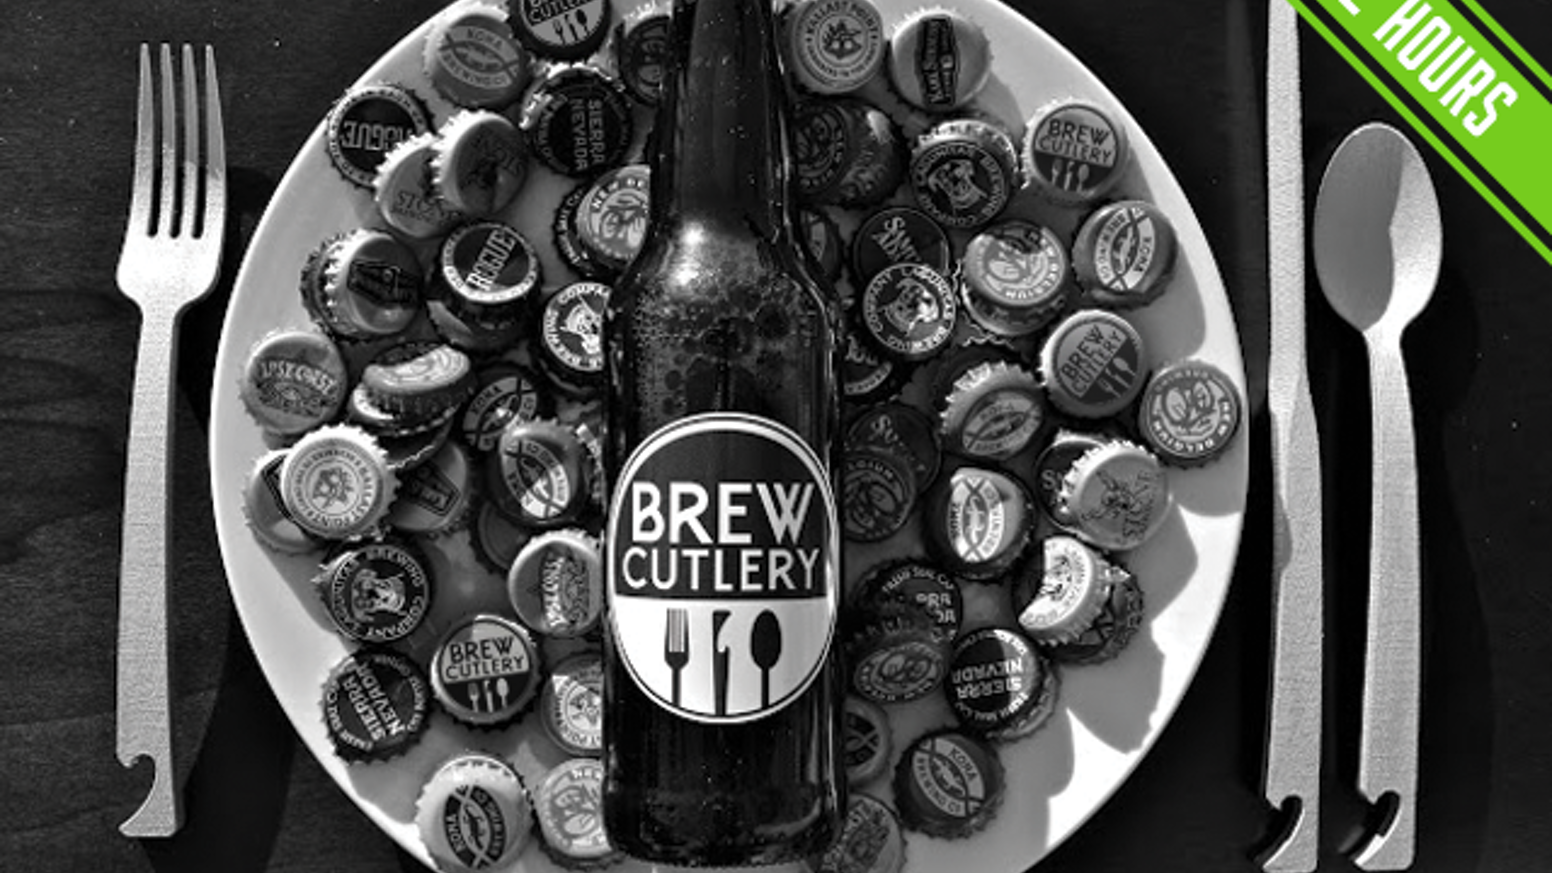 Brew Cutlery infuses the two of the finest pleasures in life: BEER & FOOD. A perfect bottle opener integrated into each piece of cutlery.